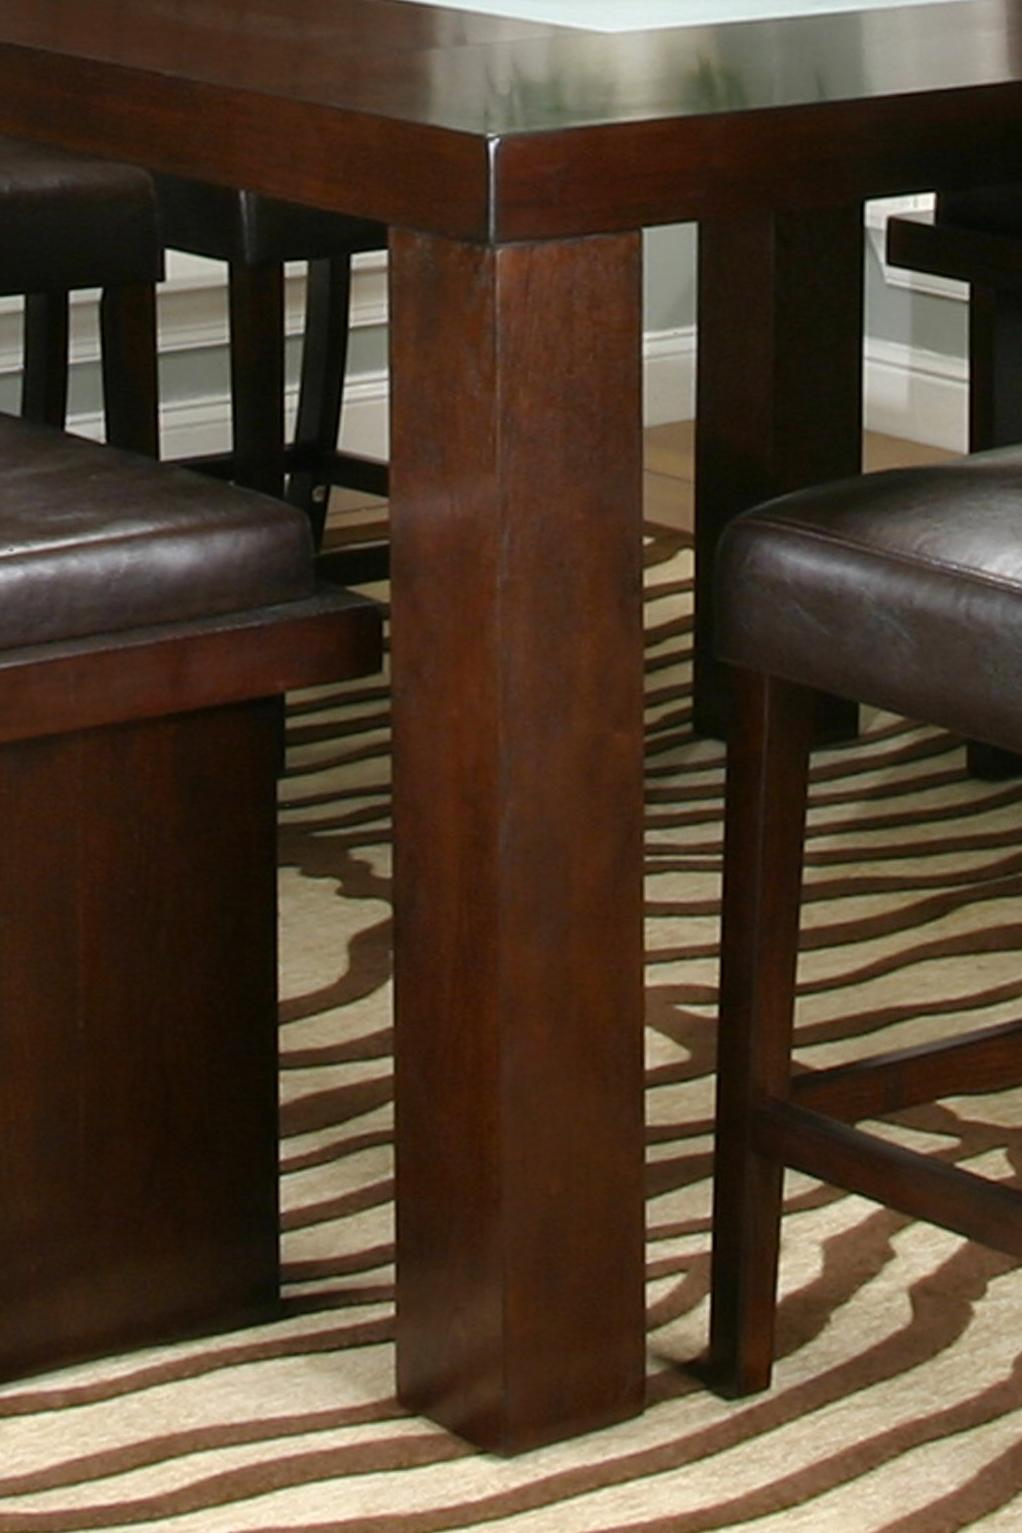 Contemporary Design Kemper 25310 by Cramco Inc J  : collections2Fcramco2Cinc2Fkemper25310 db2 from www.jj-furniture.com size 1022 x 1533 jpeg 118kB